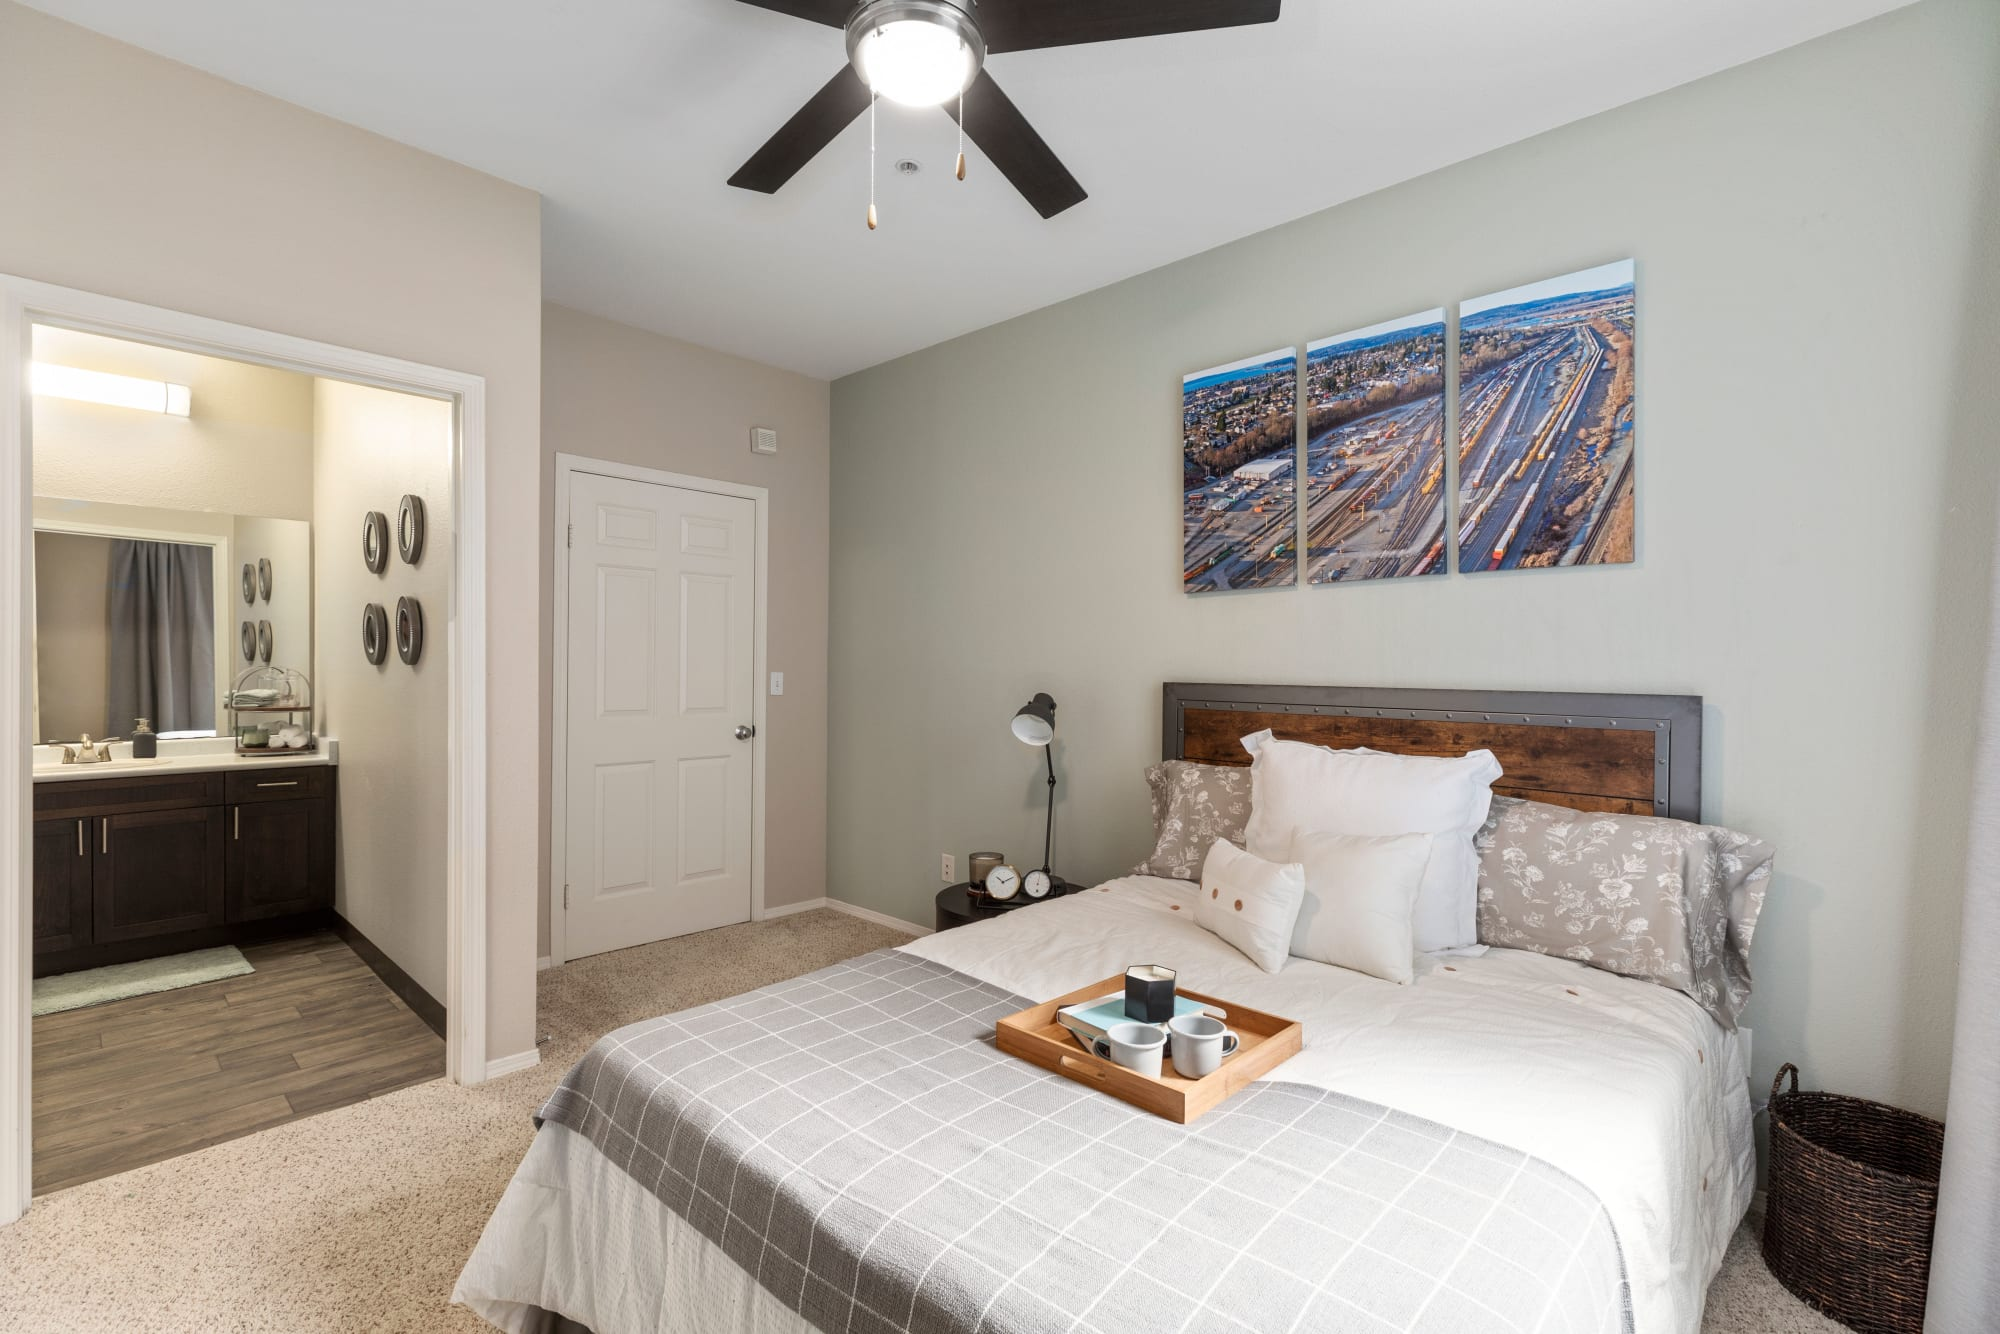 Spacious Bedroom at HighGrove Apartments in Everett, WA